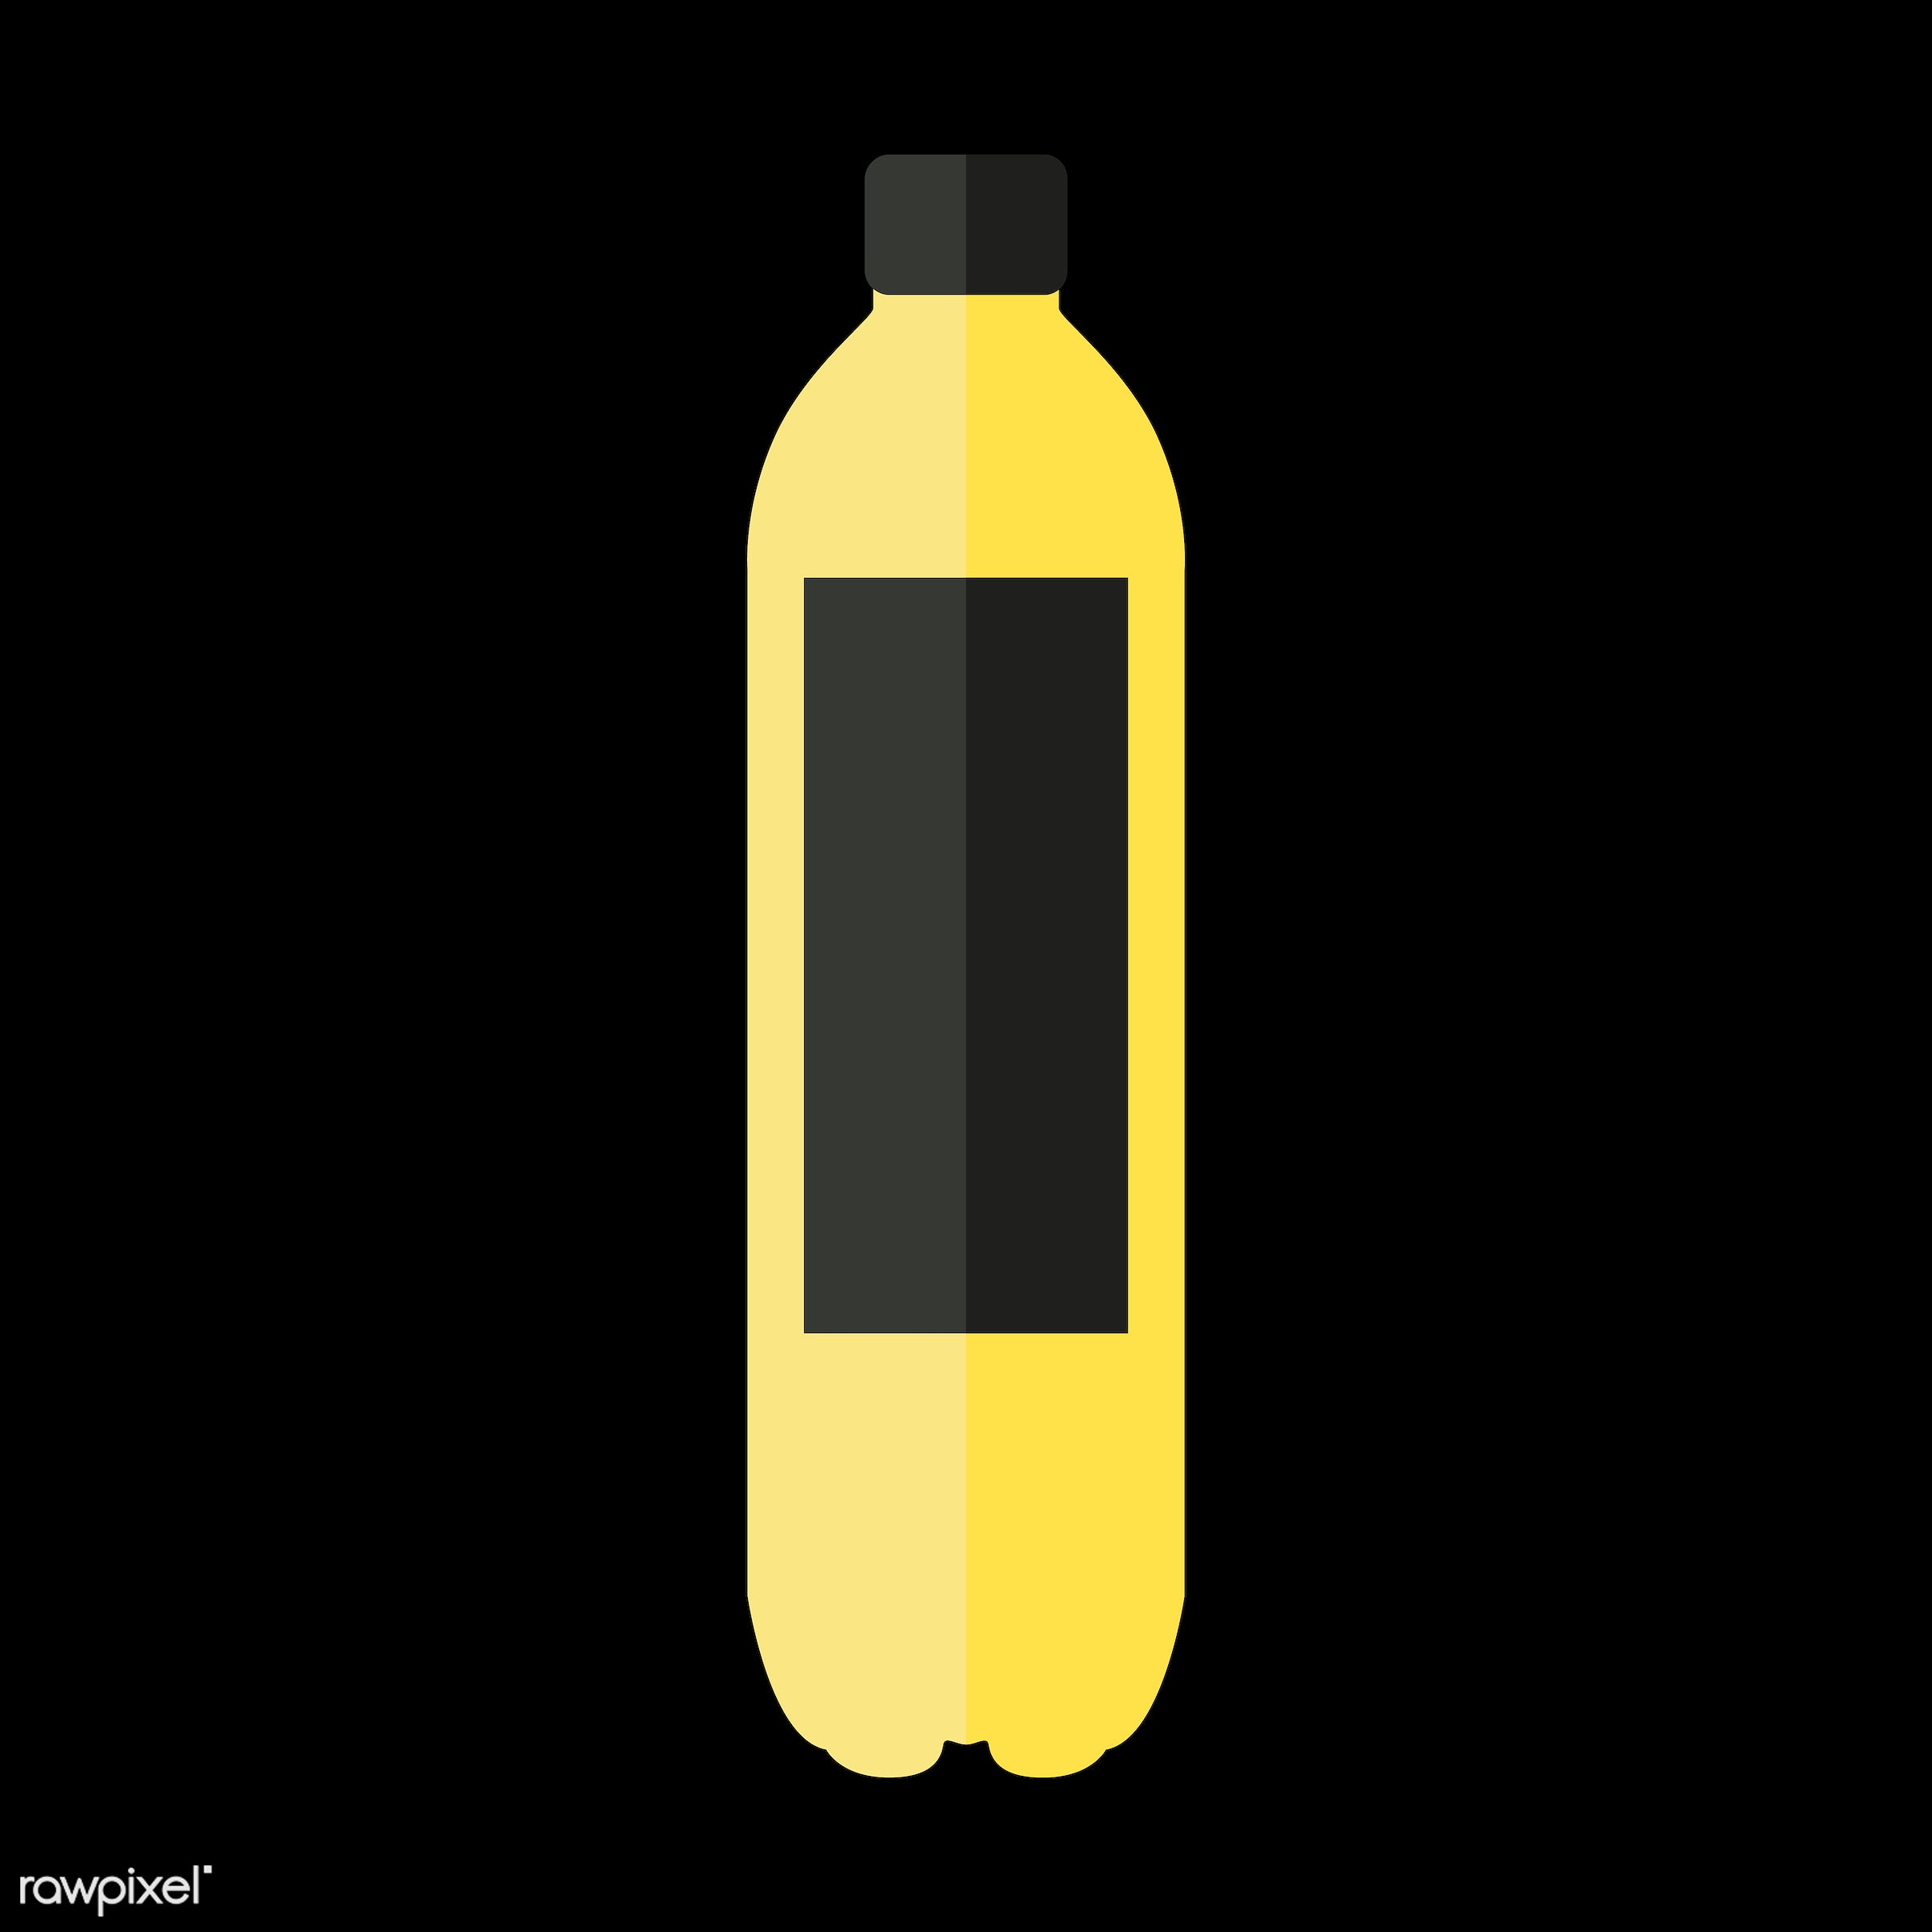 Soda bottle vector - vector, graphic, illustration, icon, symbol, colorful, cute, drink, beverage, water, soda, soda bottle...